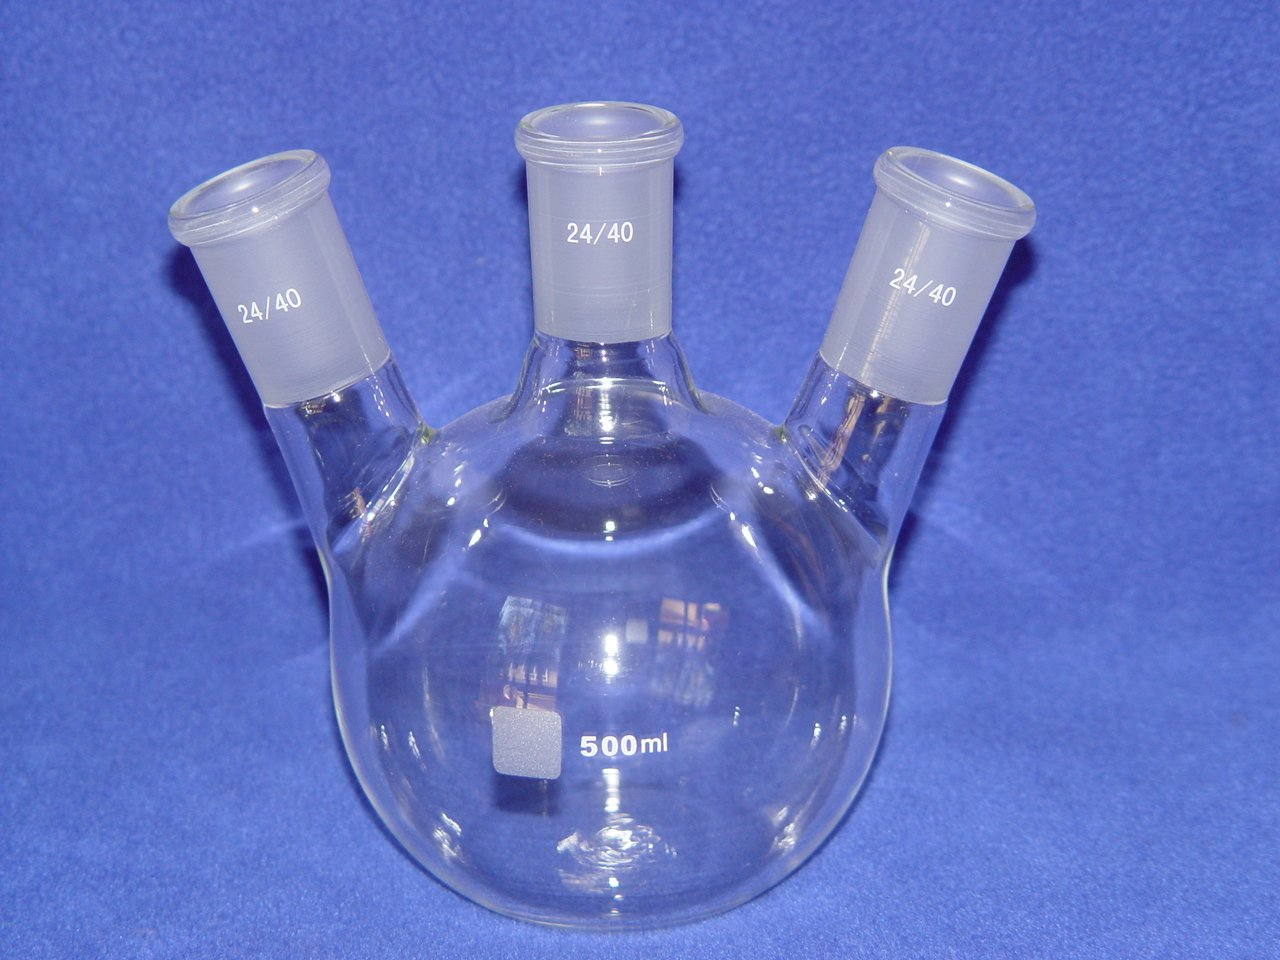 3-neck Flat bottom boiling flask: 24/40, 500ml, angled